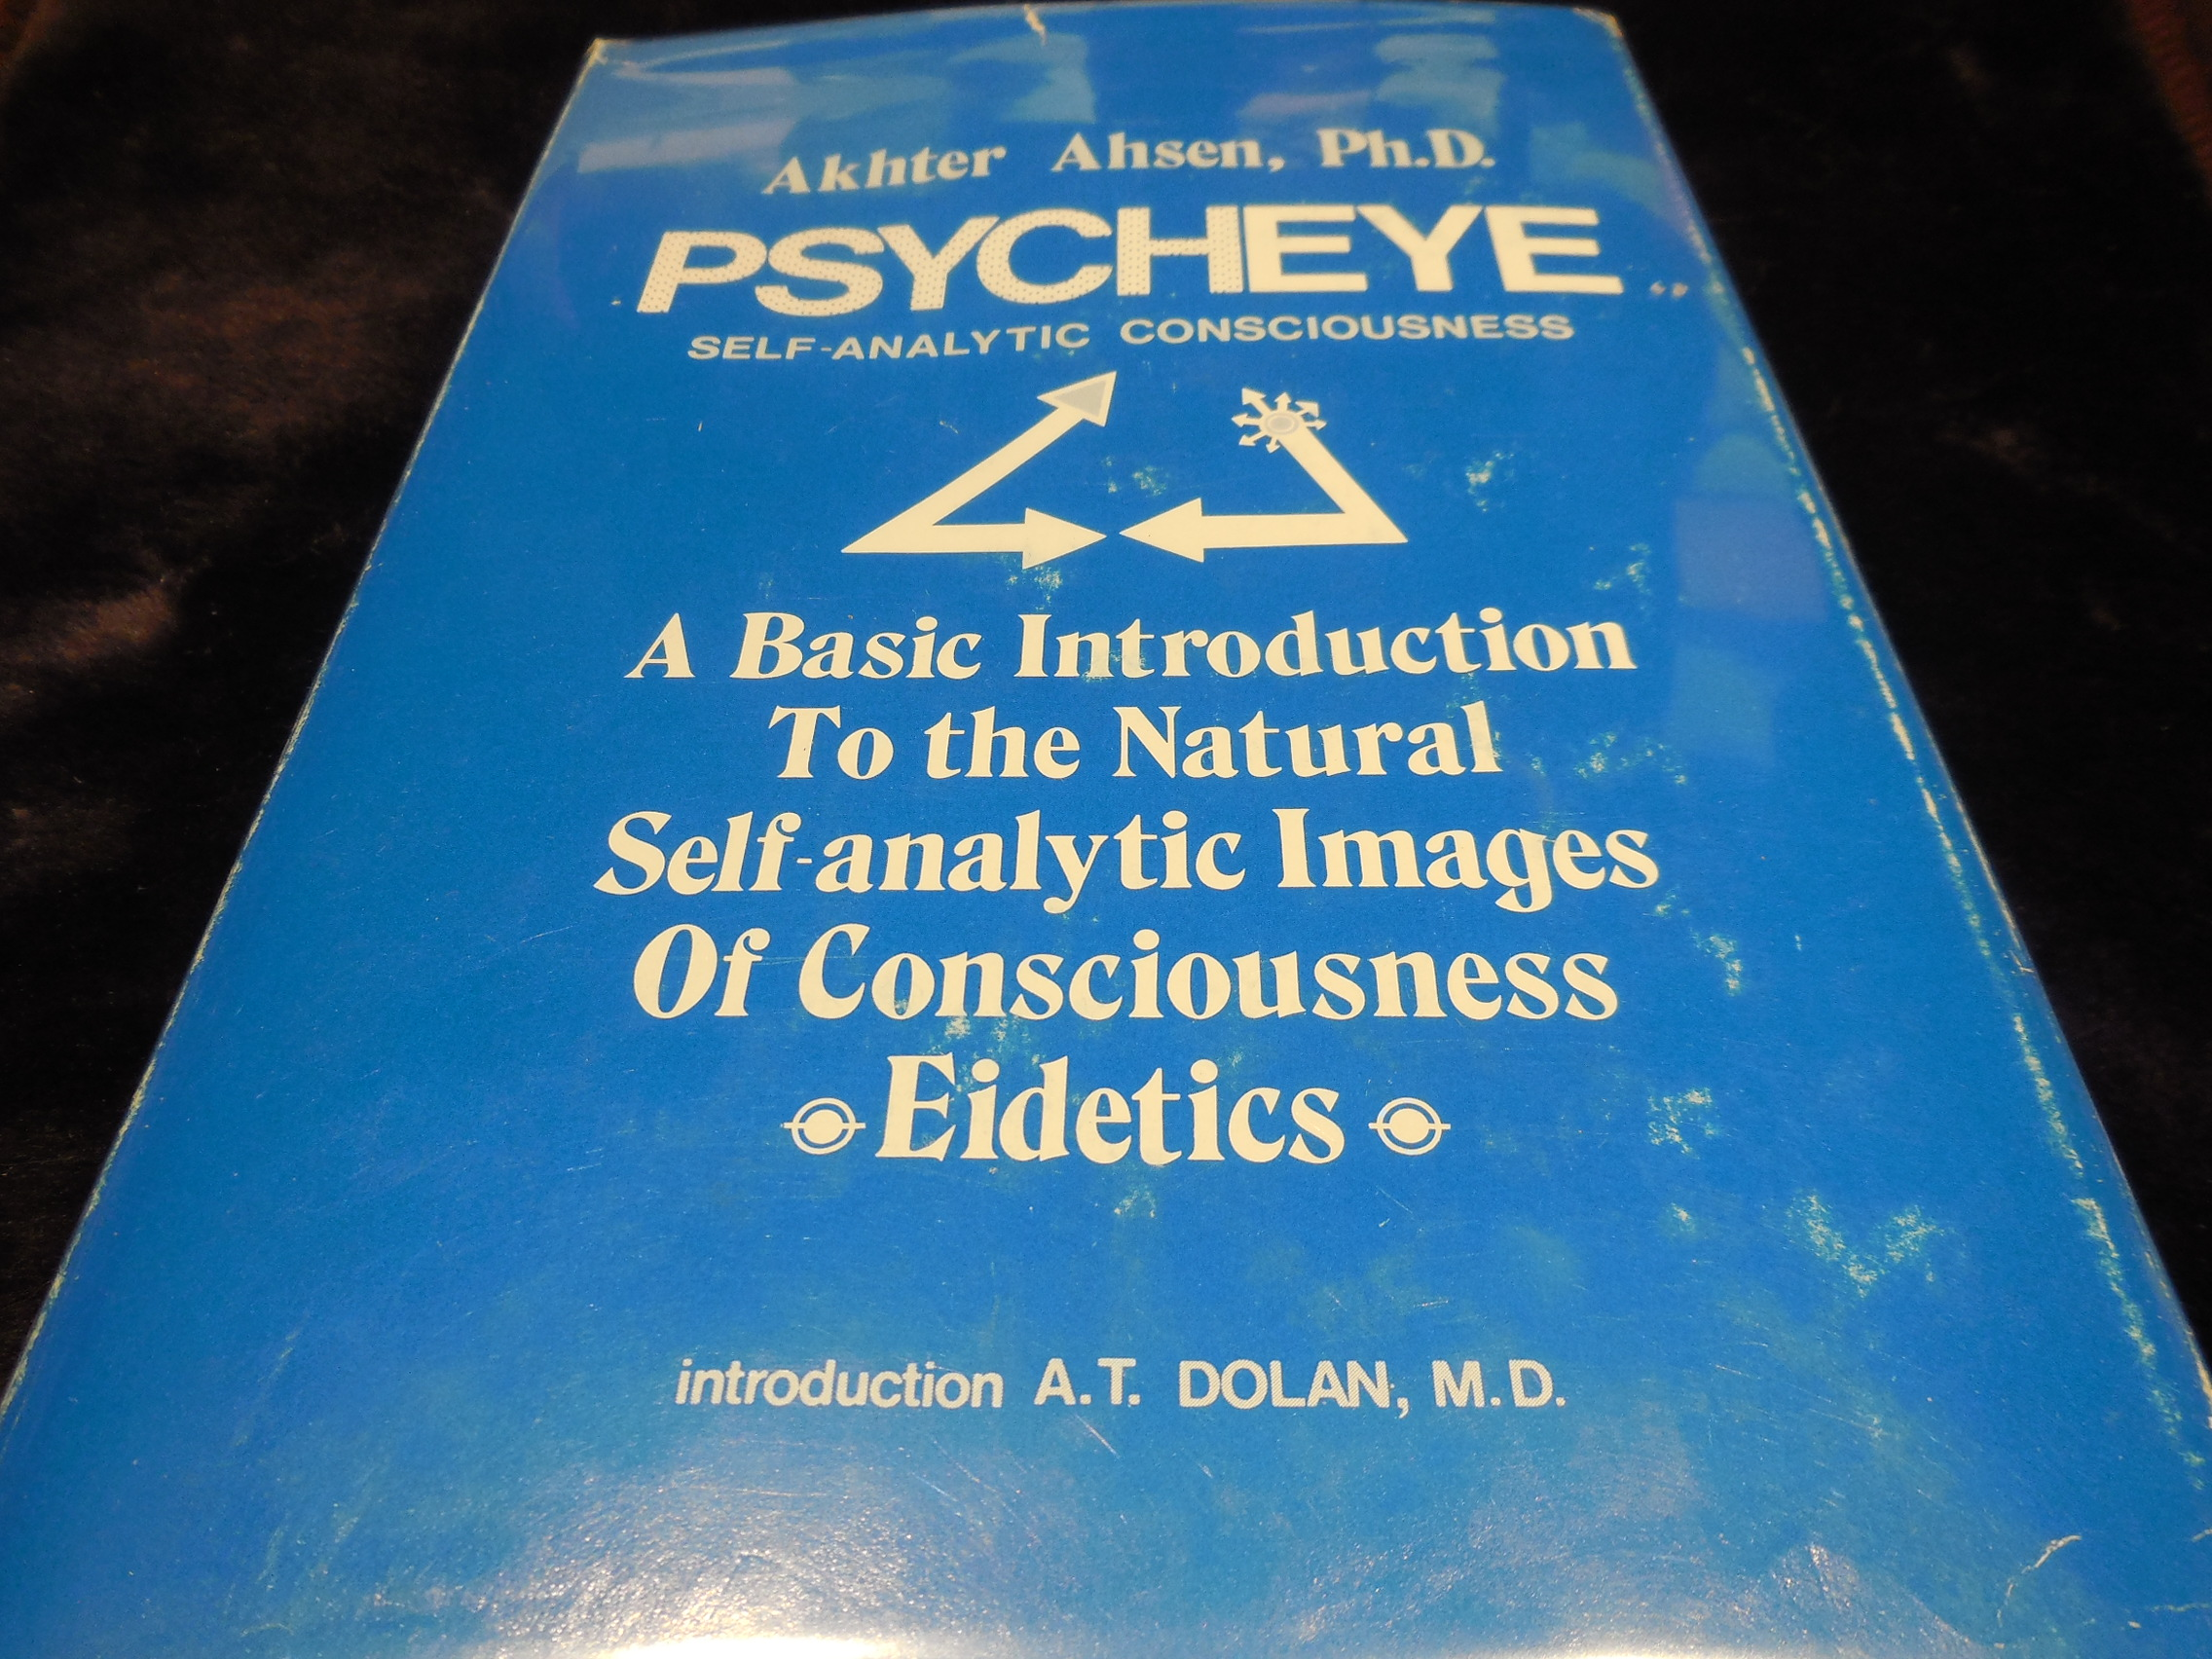 Image for Psycheye: Self Analytic Consciousness - A Basic Introduction to the Natural Self-Analytic Images of Co of Consciousness